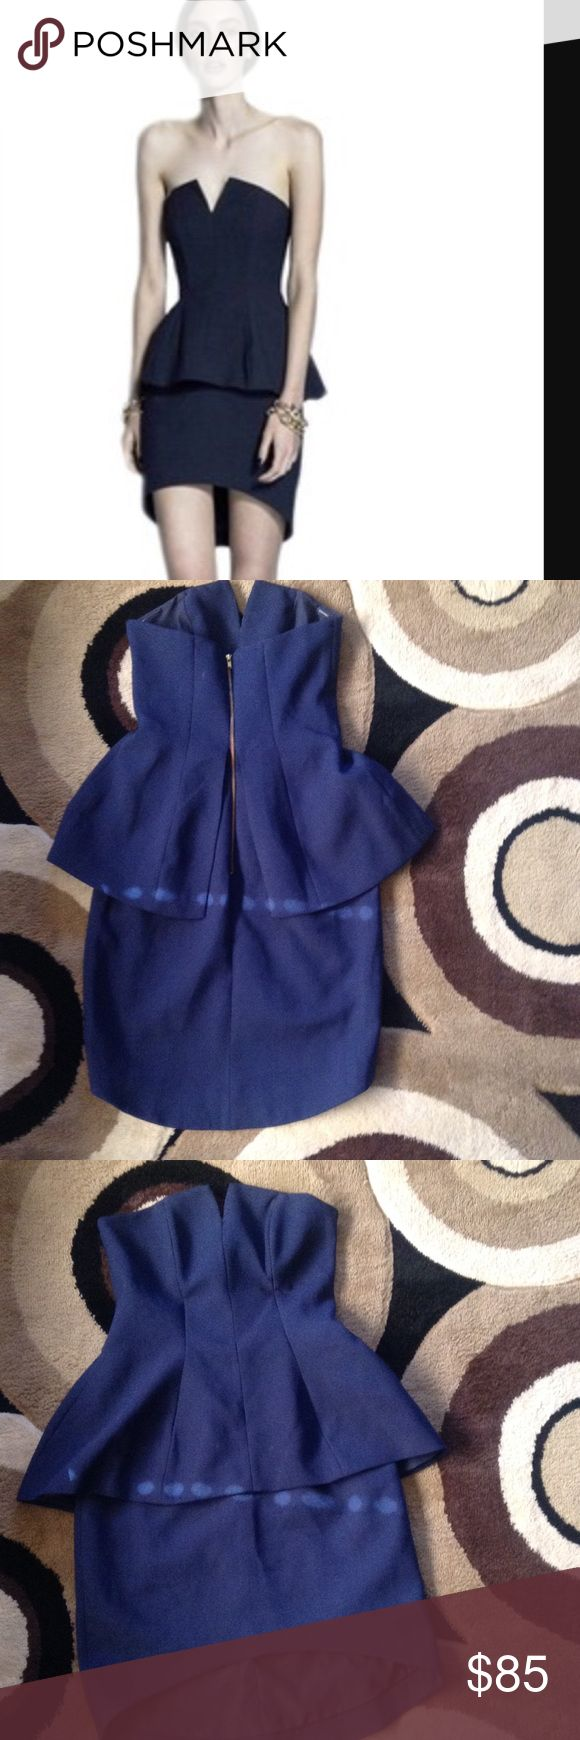 Finders keepers dress Really cute navy finders keepers dress never wear!! Finders Keepers Dresses Mini